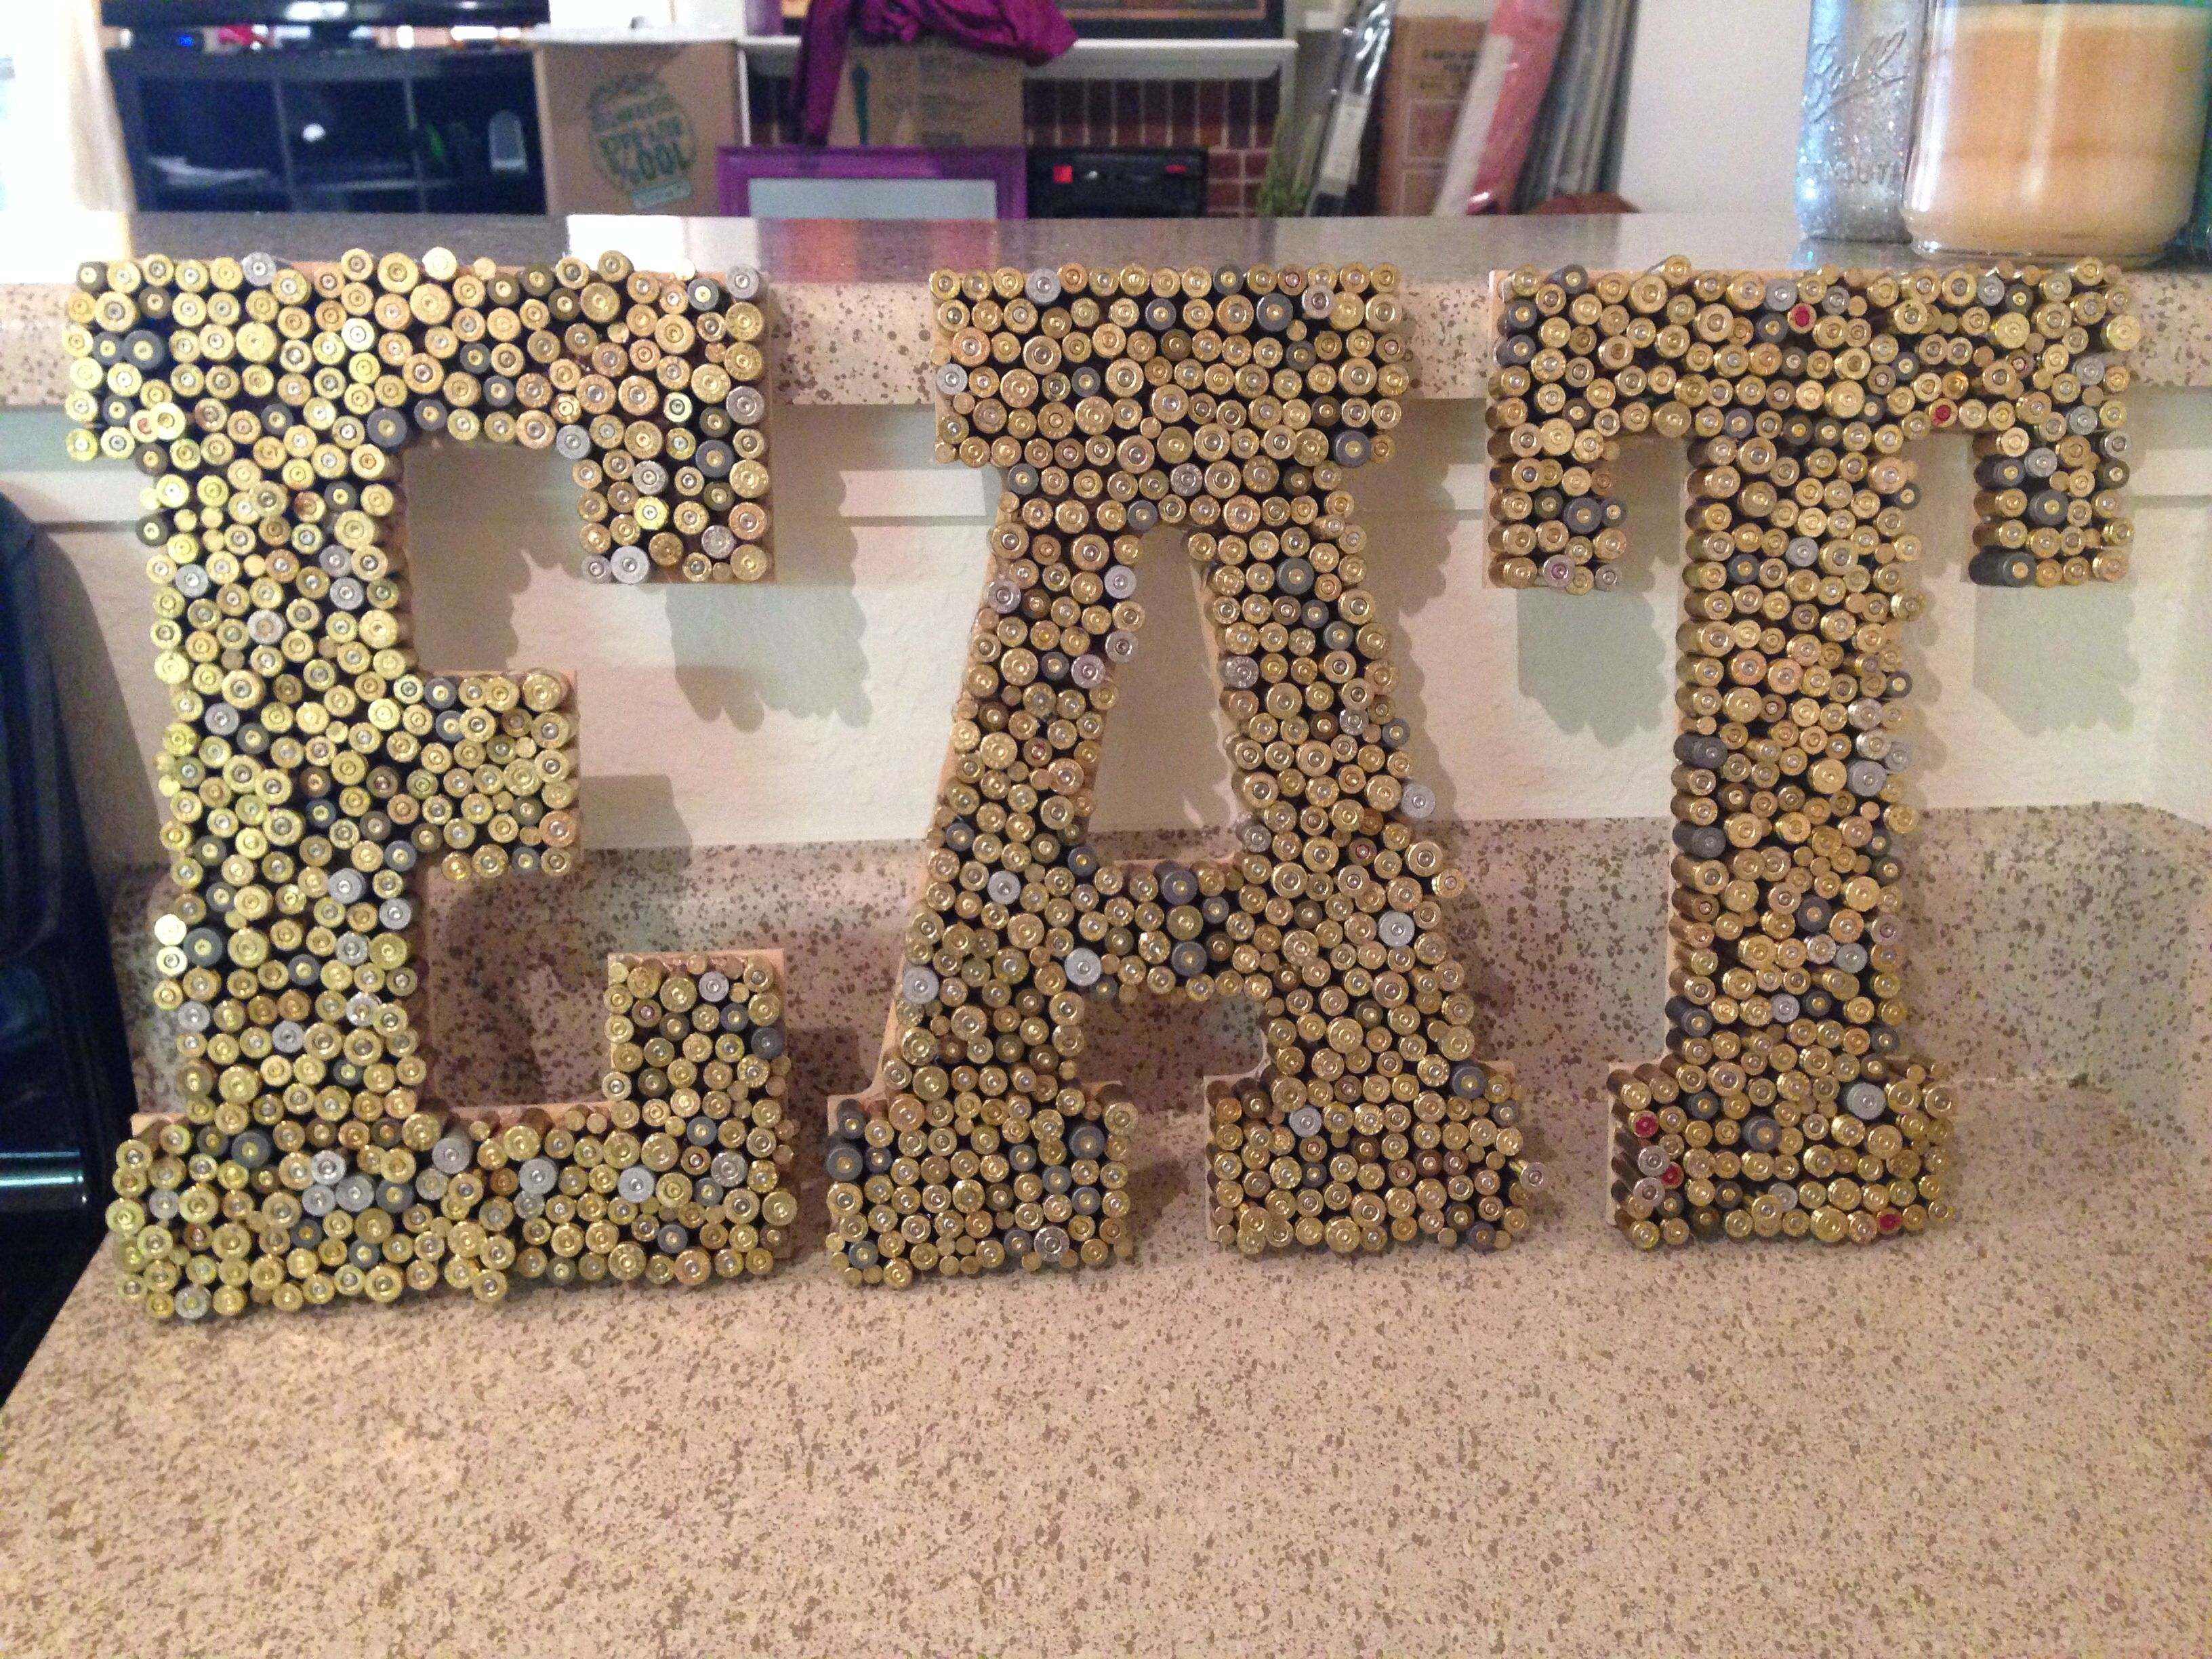 Metal Initials For Crafts Shell Casing & Bullet Crafts Hot Glue Empty Shells To Wood Letters